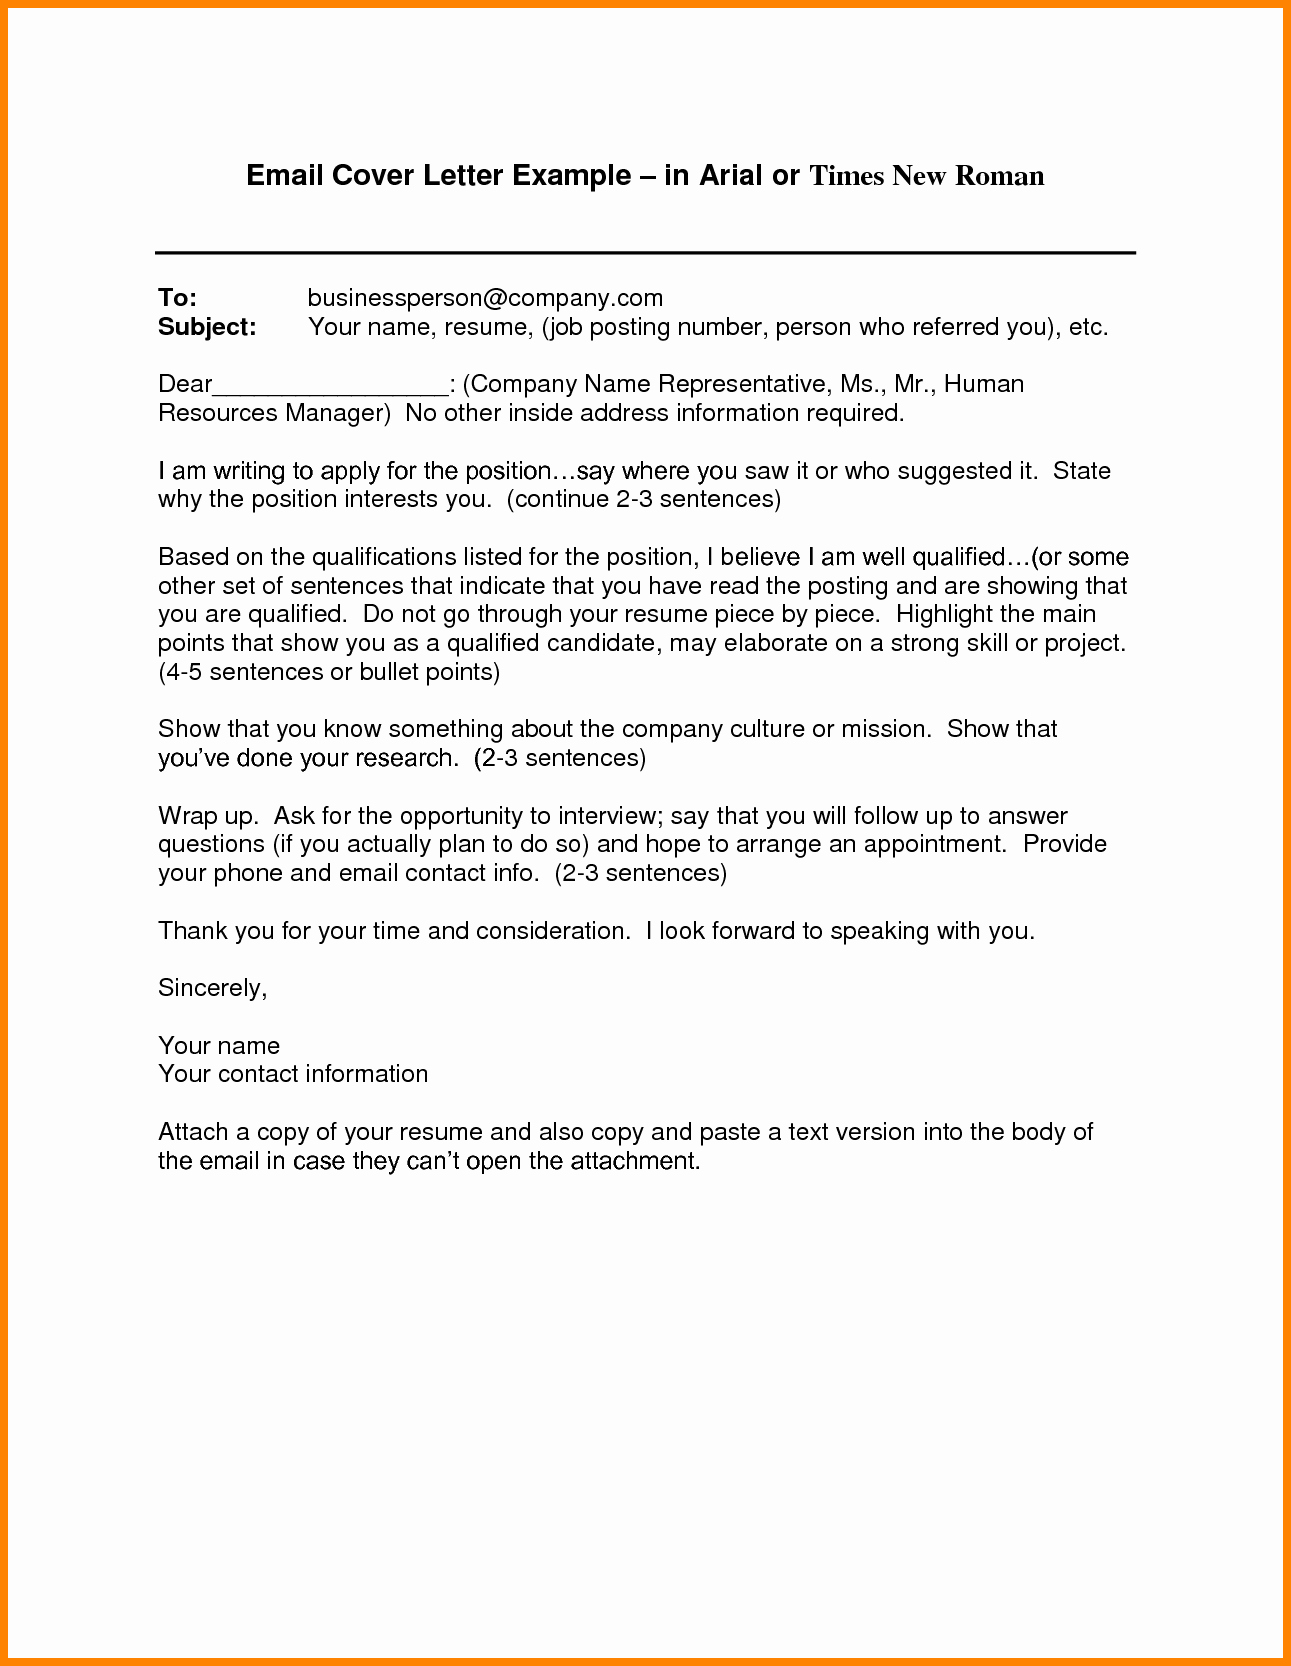 Emailed Cover Letter format Best Of 6 Email Cover Letter Templates